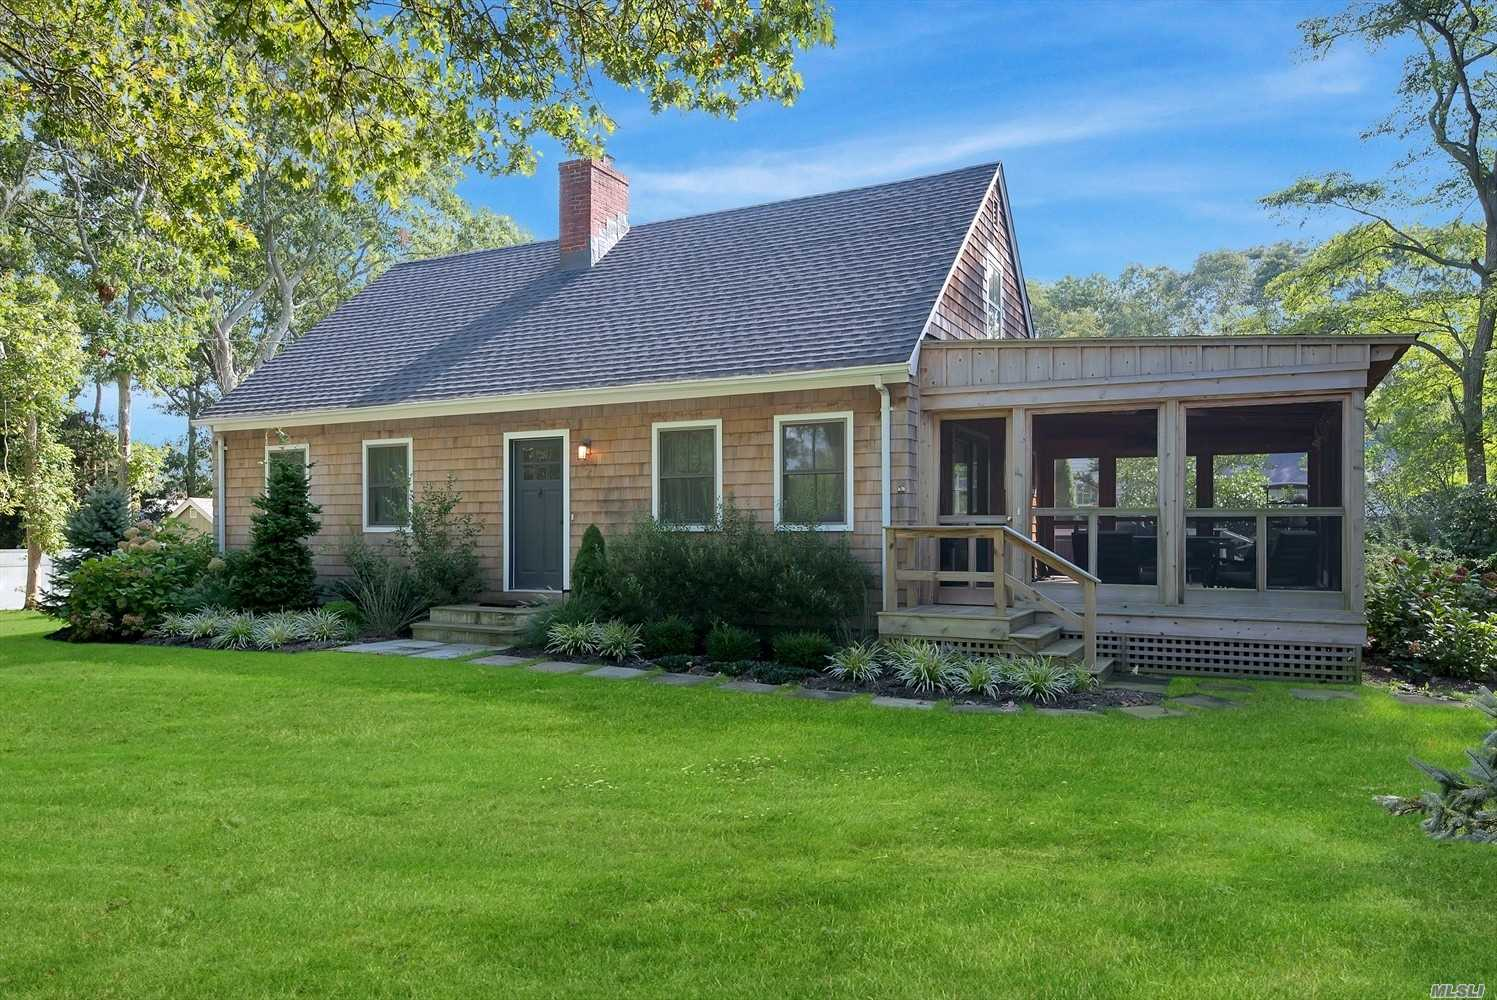 Move Right In To This Beautifully Renovated Cape Located On A Large Corner Property Overlooking An Idyllic Tree Farm In E. Quogue. Completely Updated In 2016, The Home Has New Master Br W En-Suite Bath, New Kitchen Appliances, W/D, Solid Plank White Oak Flooring Downstairs, Windows And Sliders, Heating And Cac, Plumbing, Electric, And Irrigation Systems, Garden Shed, And A Brand New Gorgeous Screened In Porch With Skylights!